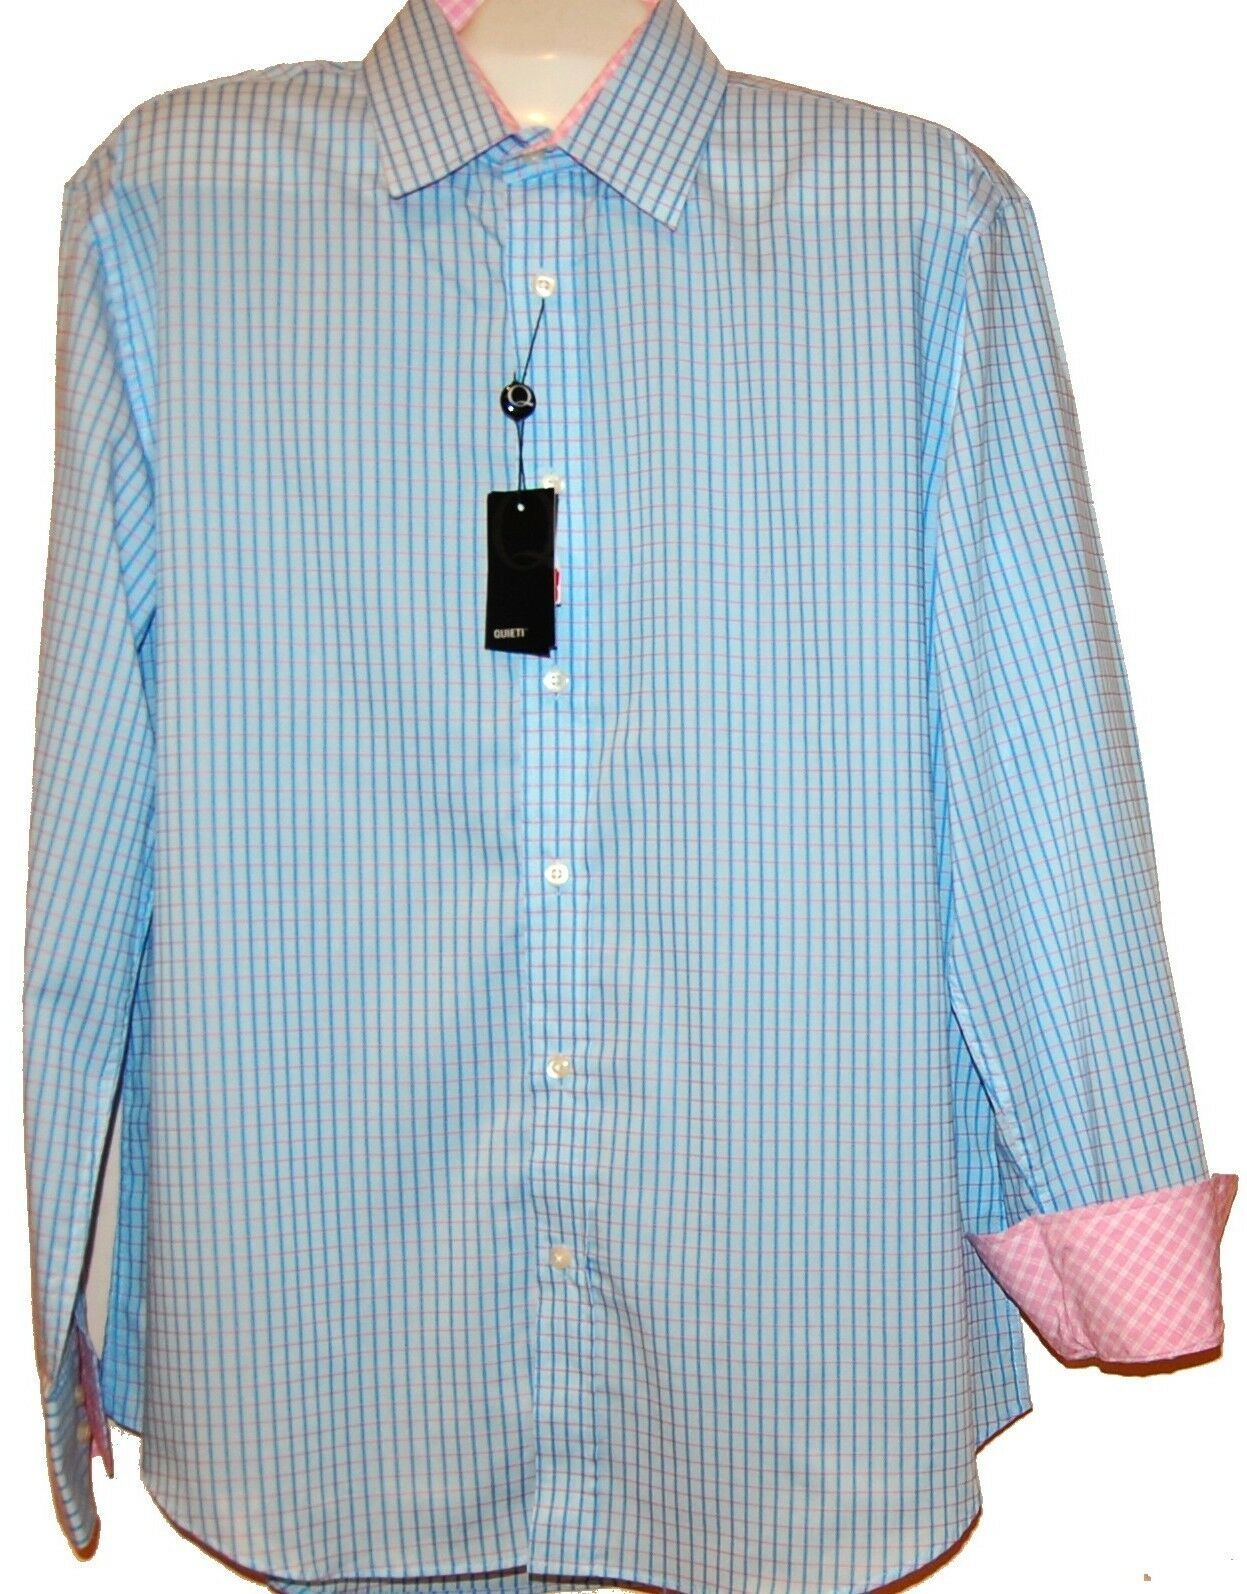 Quieti bluee  Pink Plaids  Fancywork Men  Shirt Size XL NEW